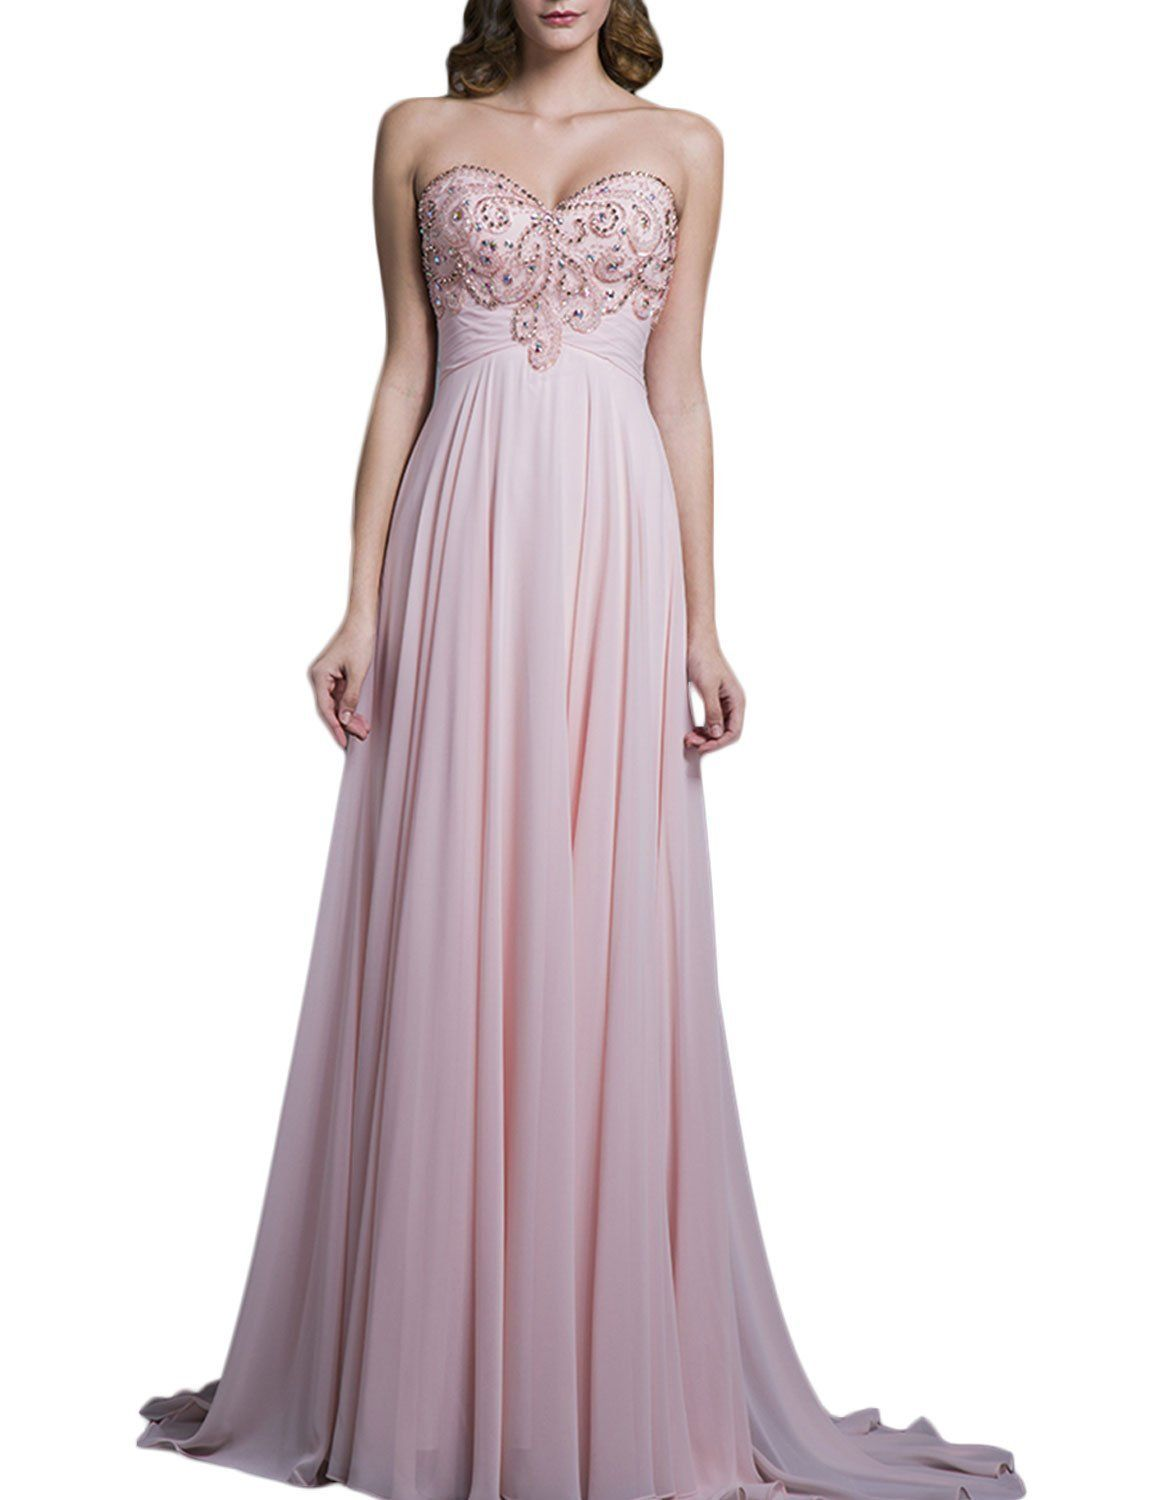 Seasonmall womenus prom dress a line sweetheart peach chiffon